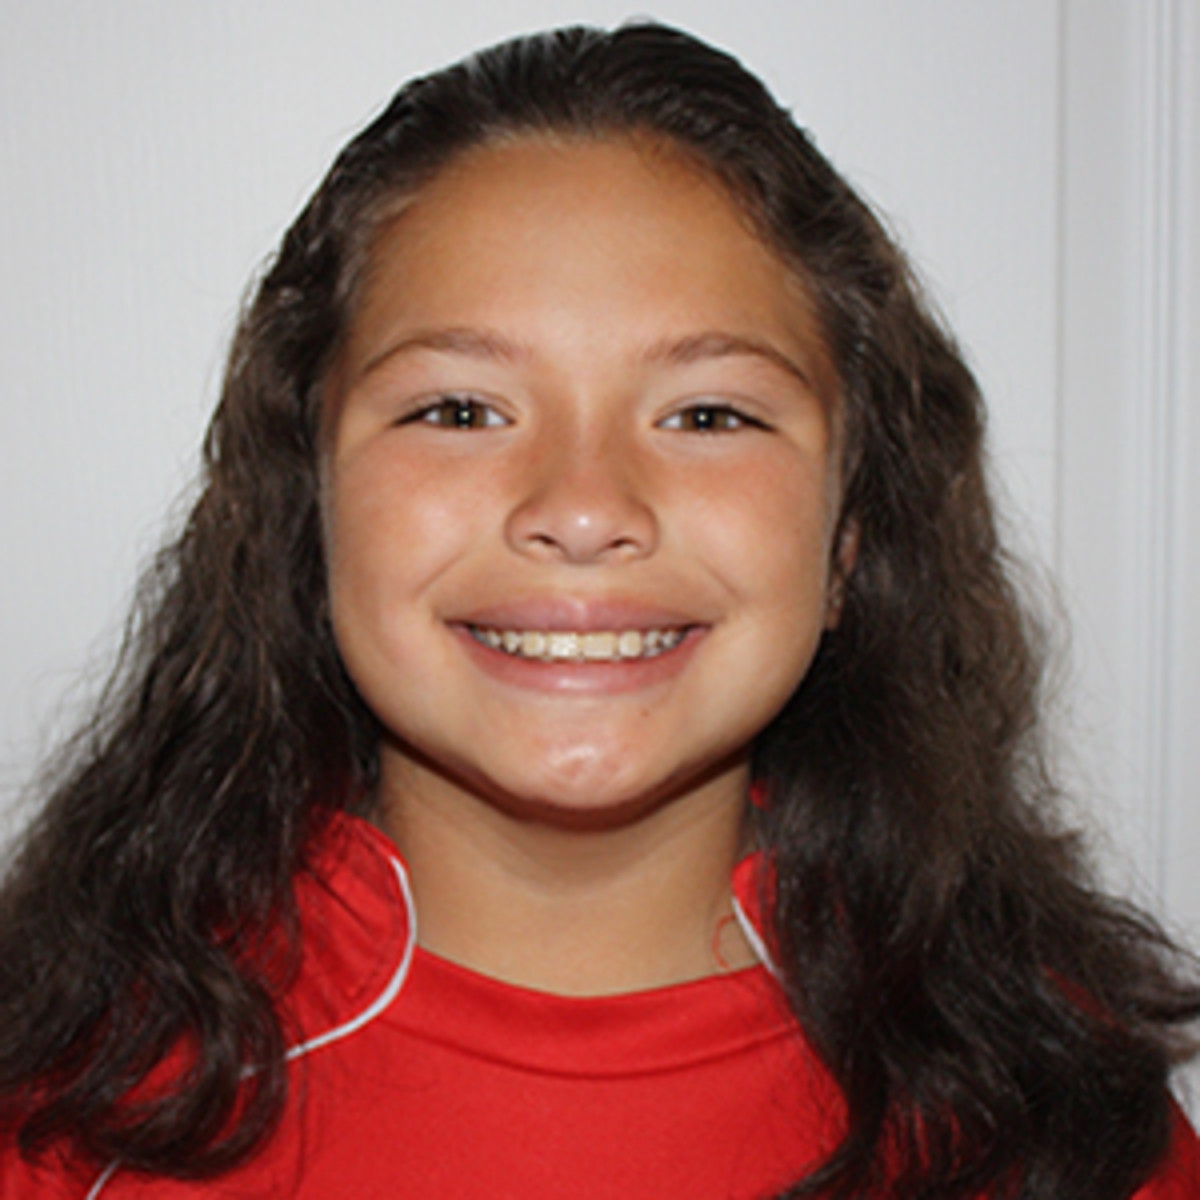 sportkids of the month july 2015 sofia sasan